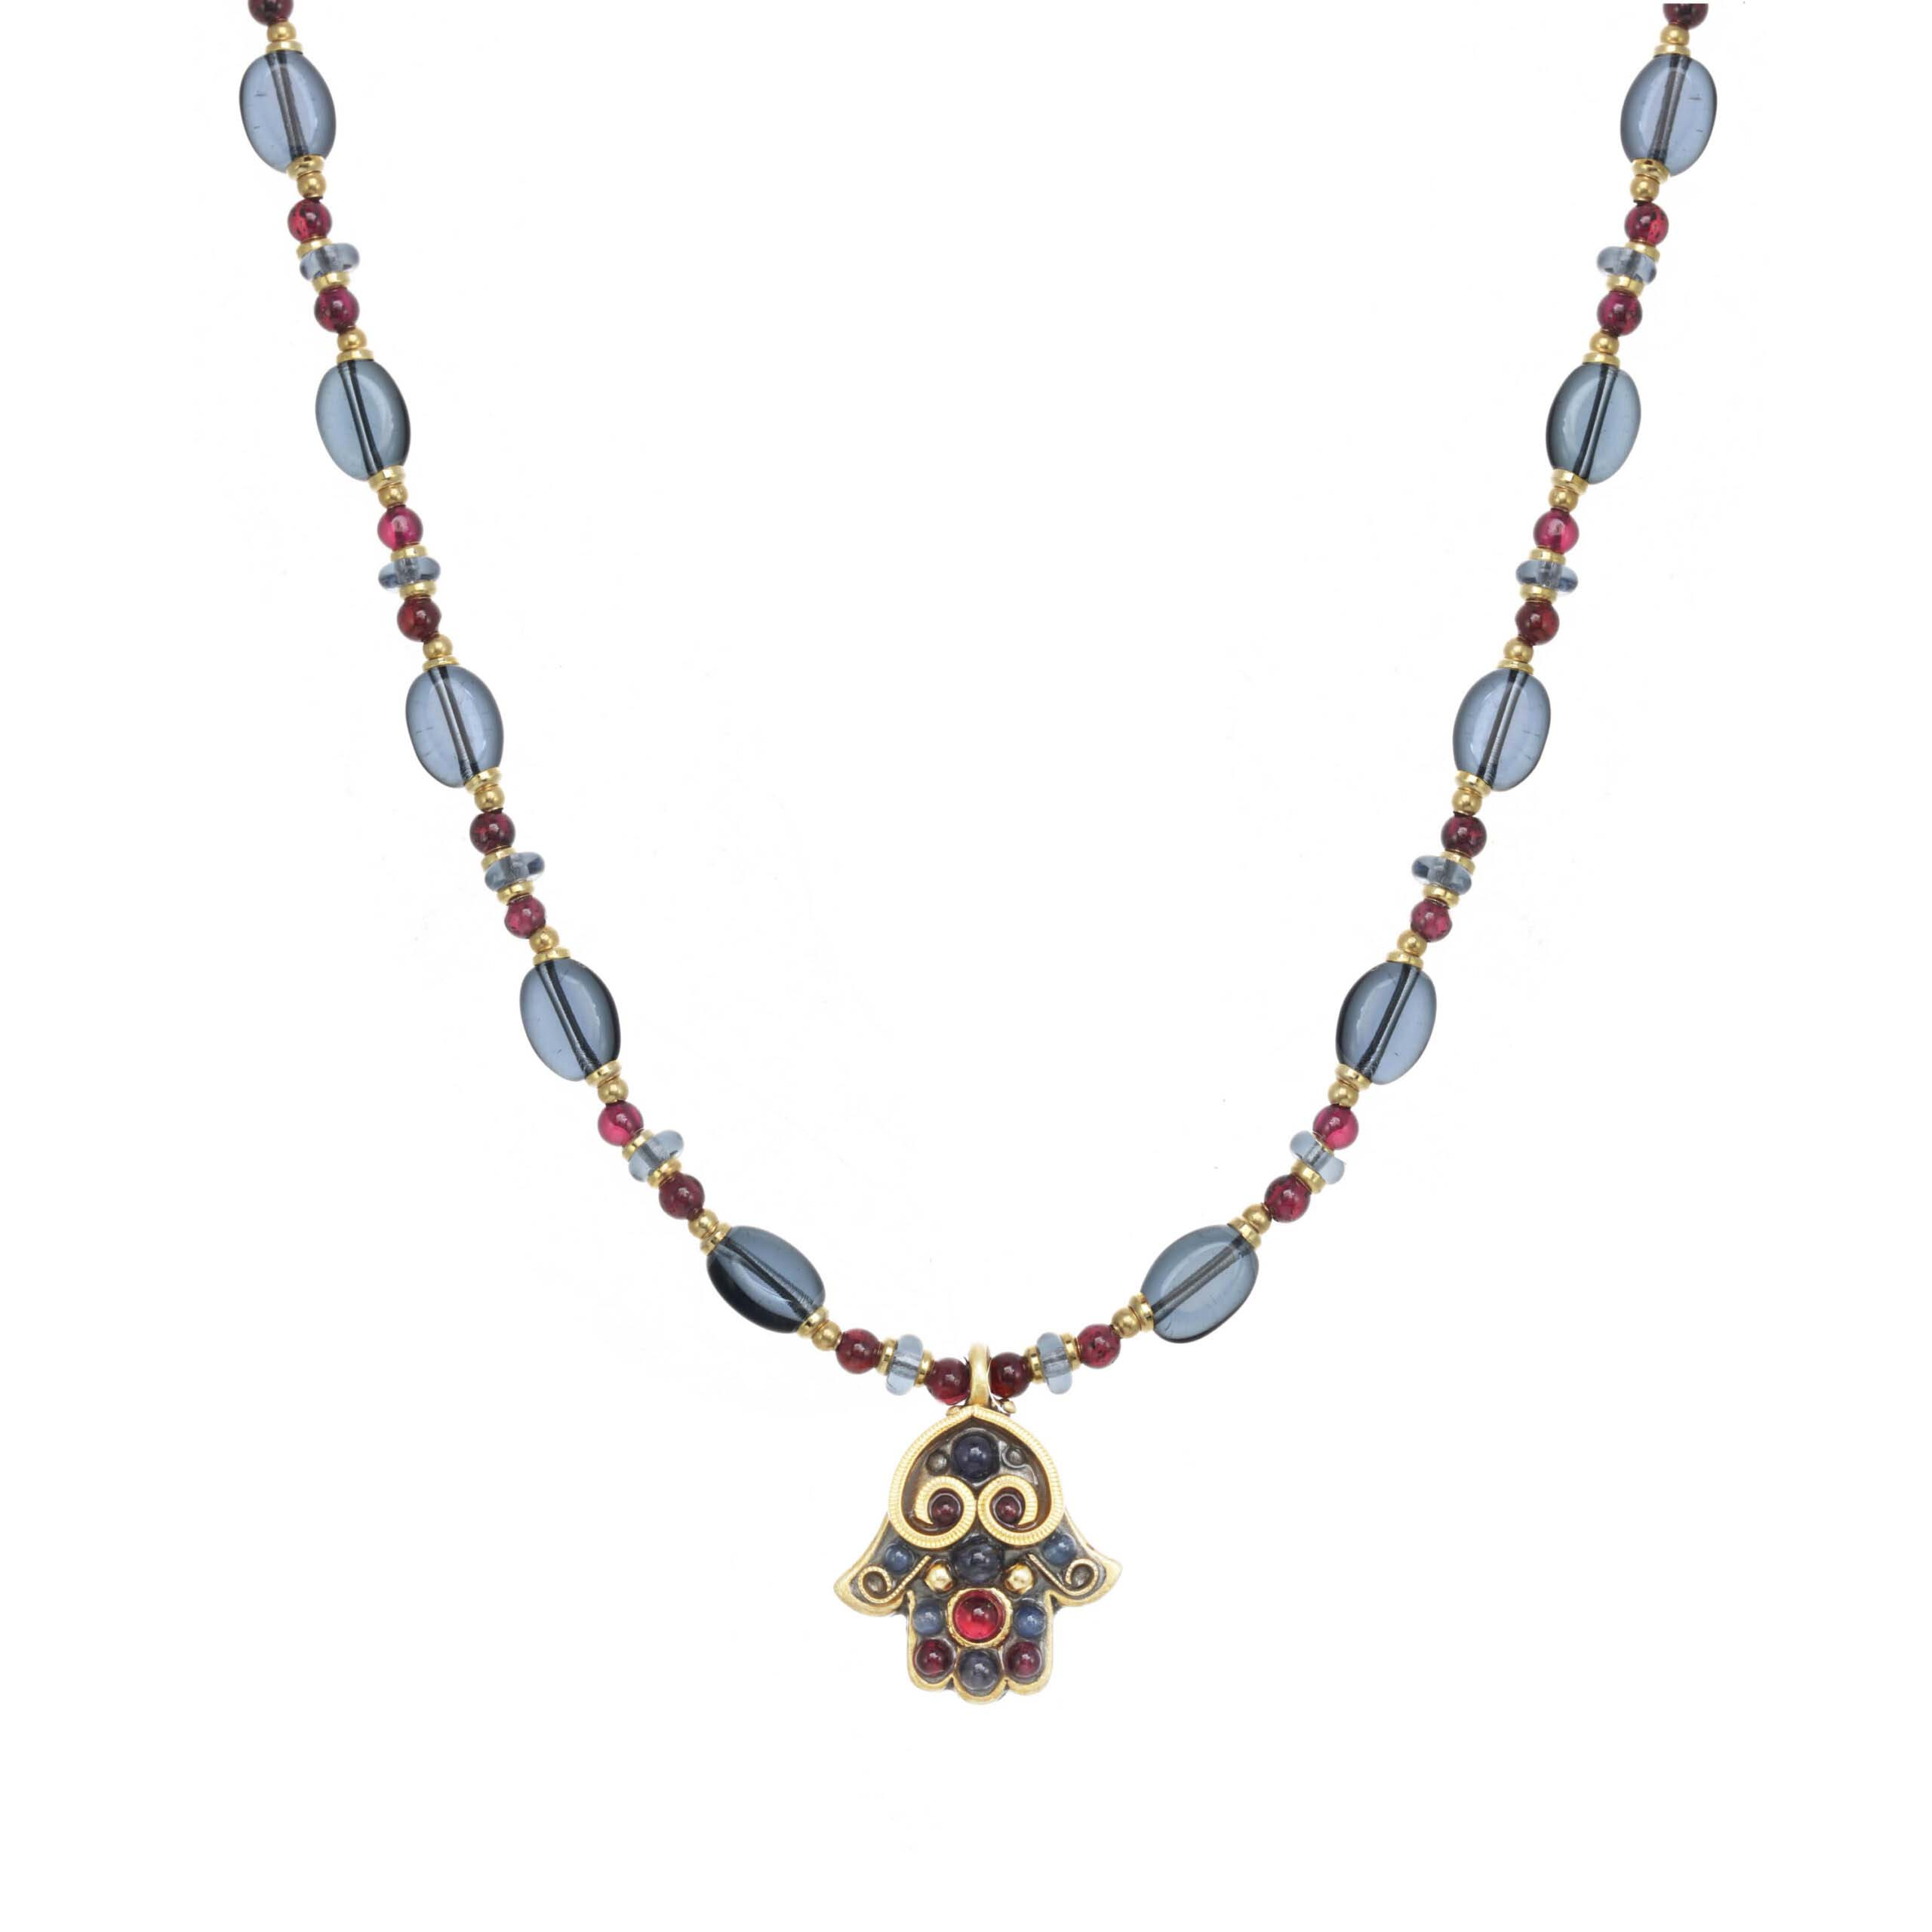 Small Iolite and Garnet Hamsa Necklace